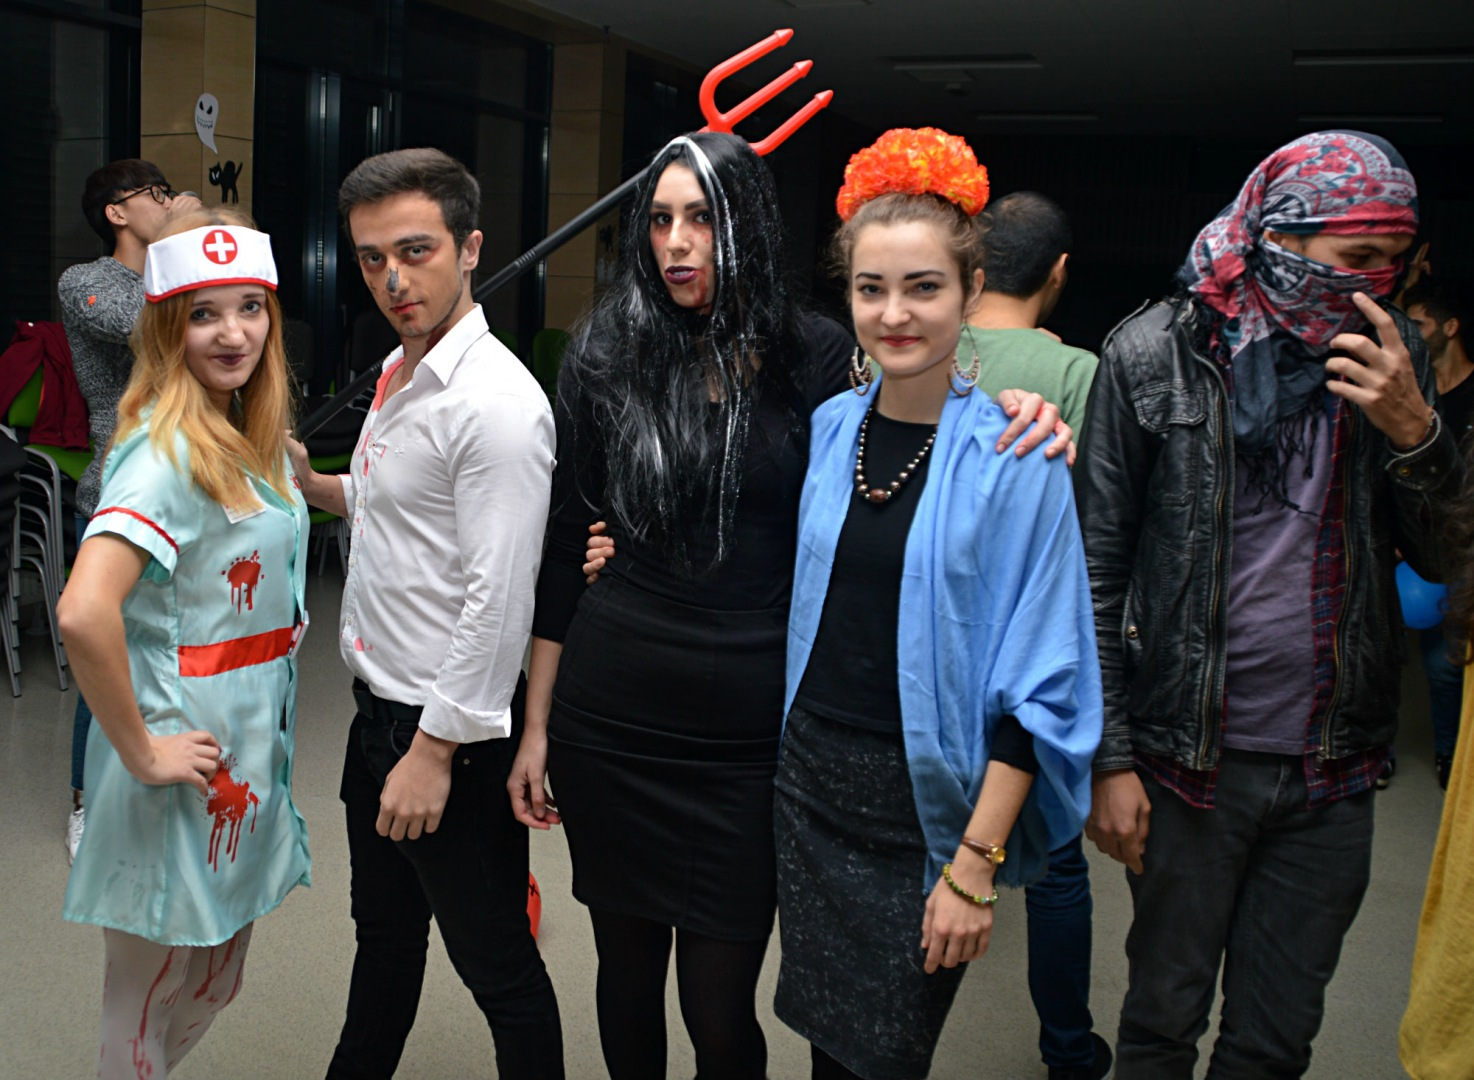 International Students Halloween Party 2018 – University of Opole